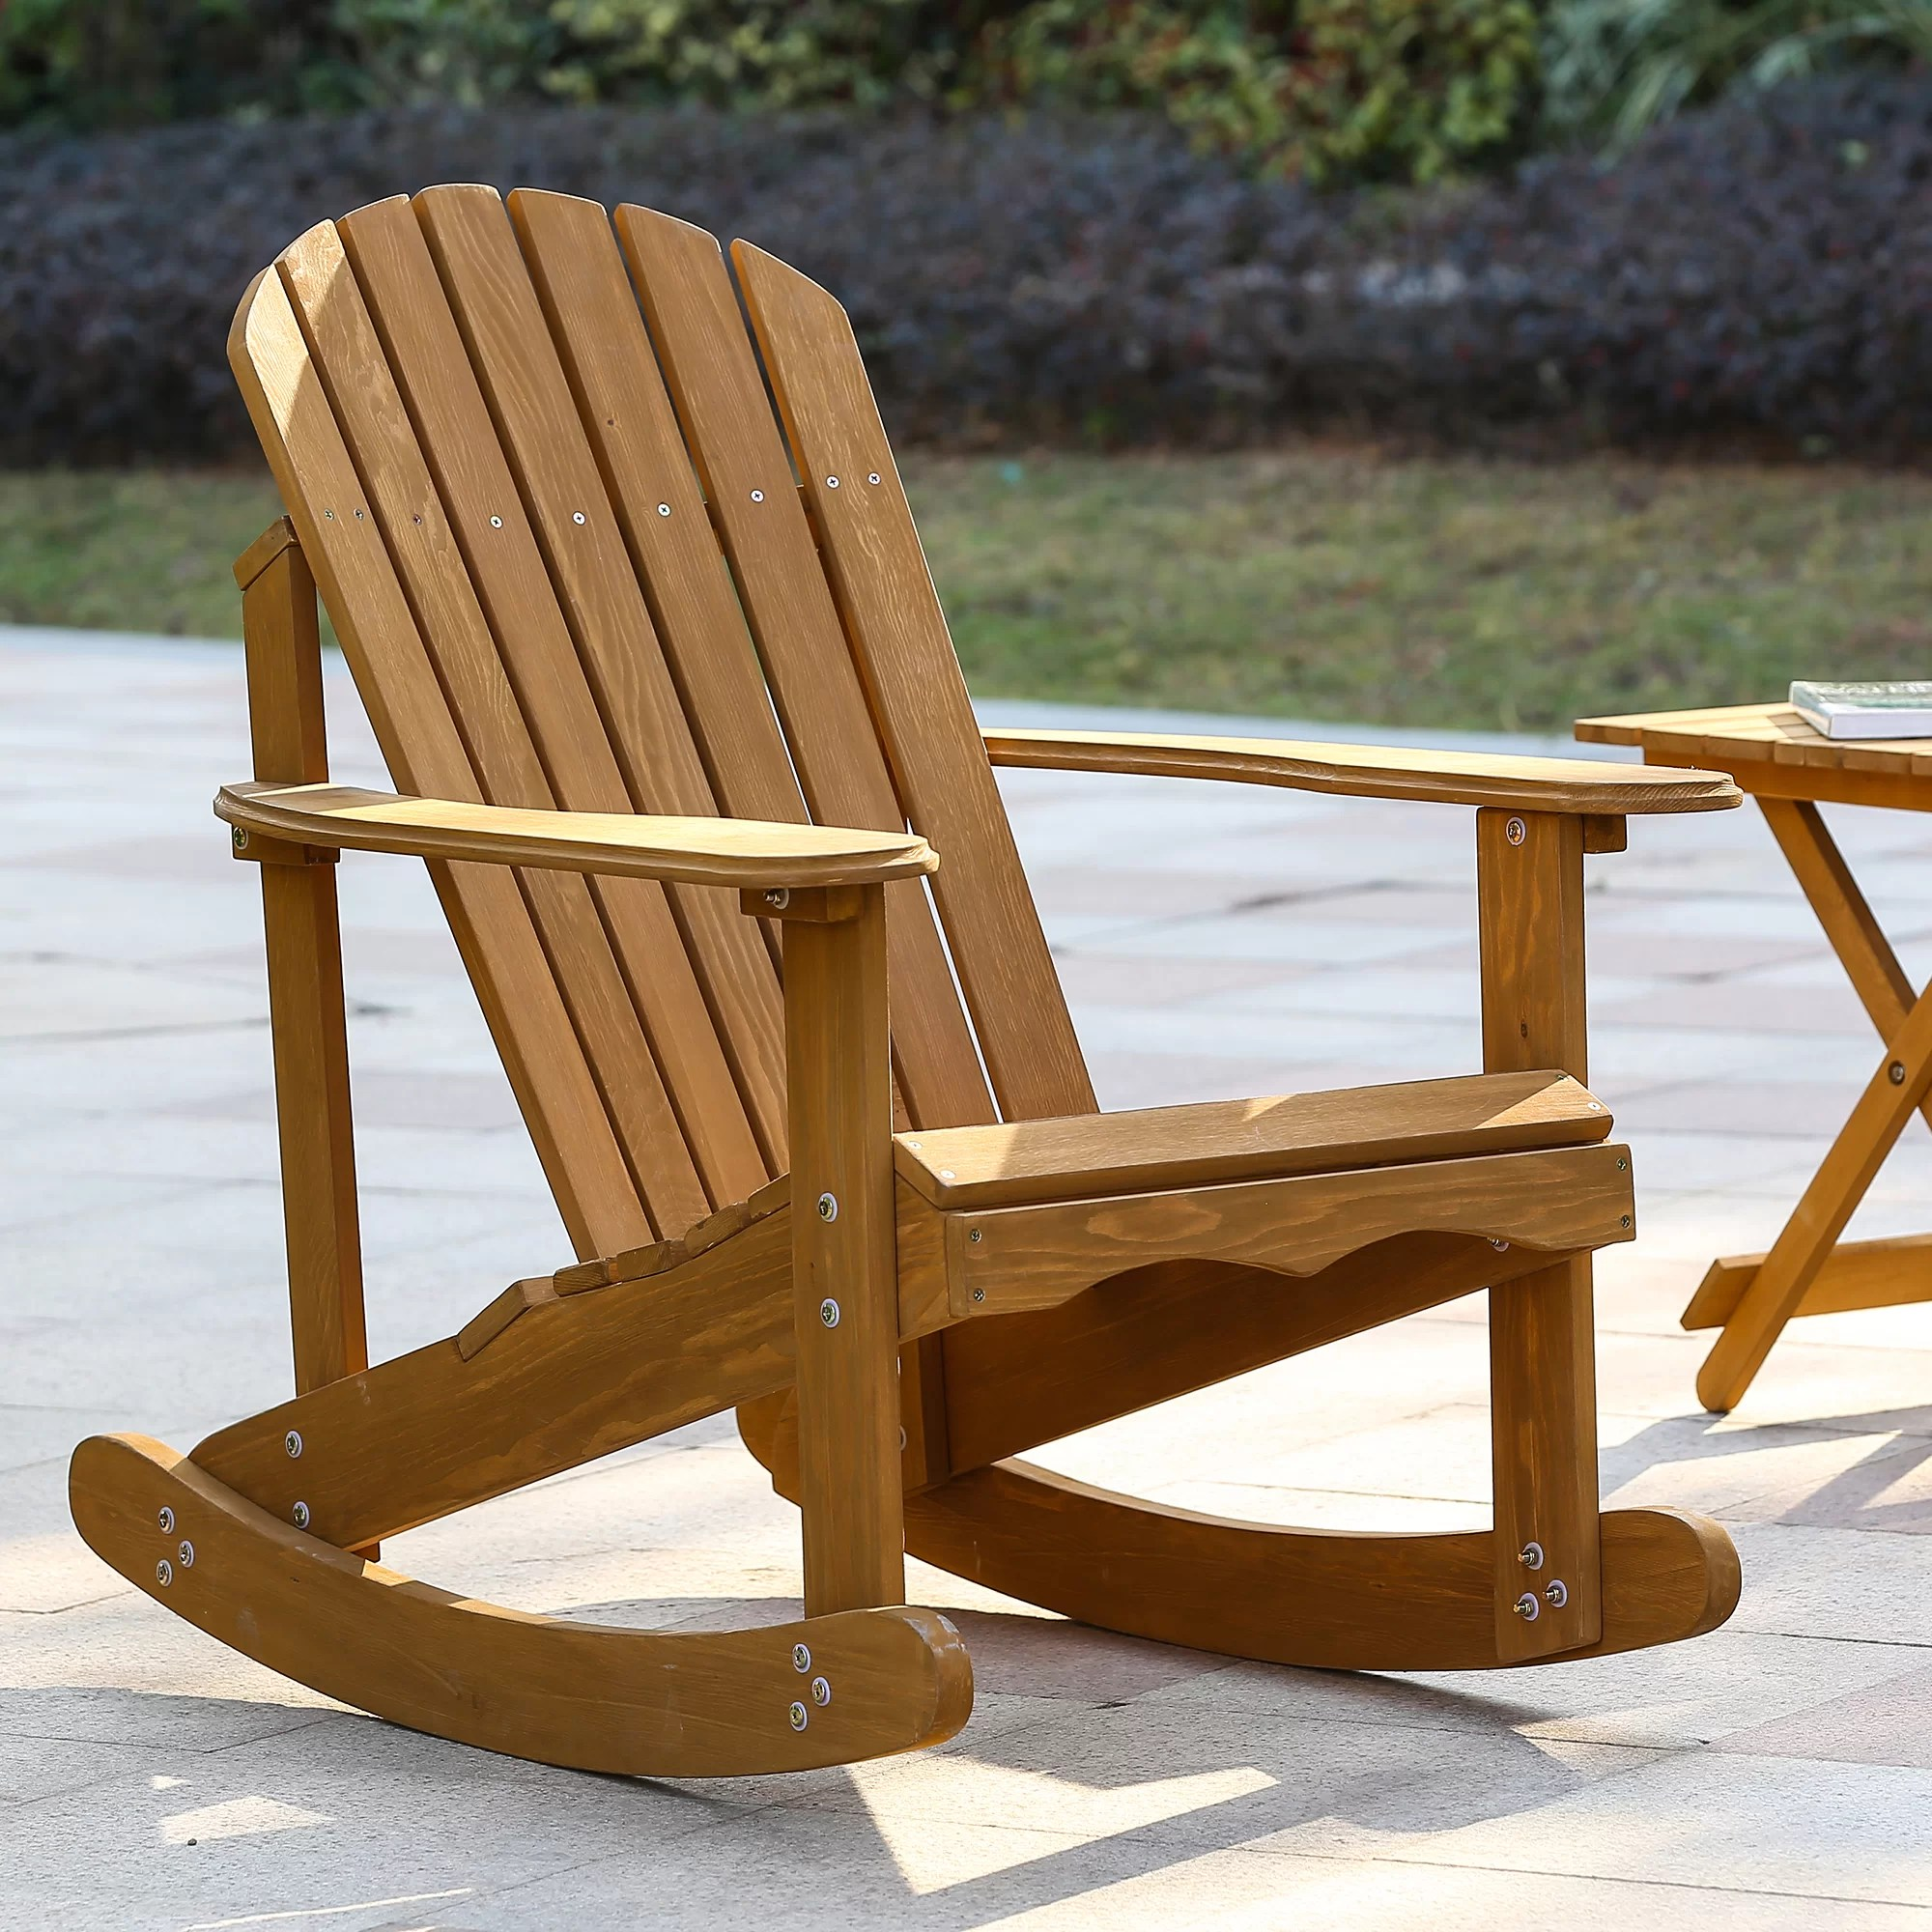 Best Place To Buy Rocking Chairs Chartier Solid Wood Rocking Adirondack Chair